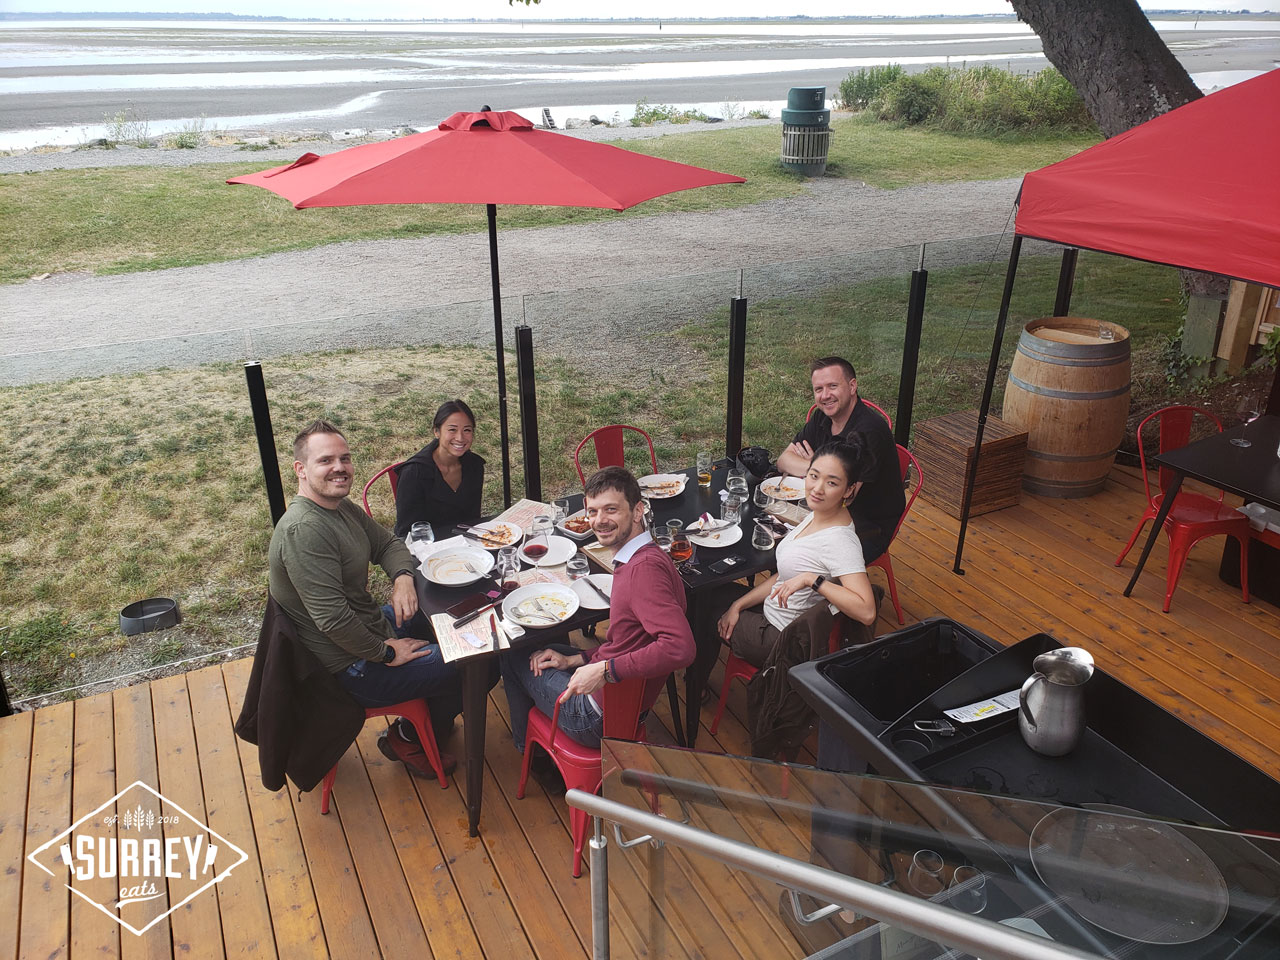 Craig and Michelle from Surrey Eats seated with three friends on Cotto al Mare's patio